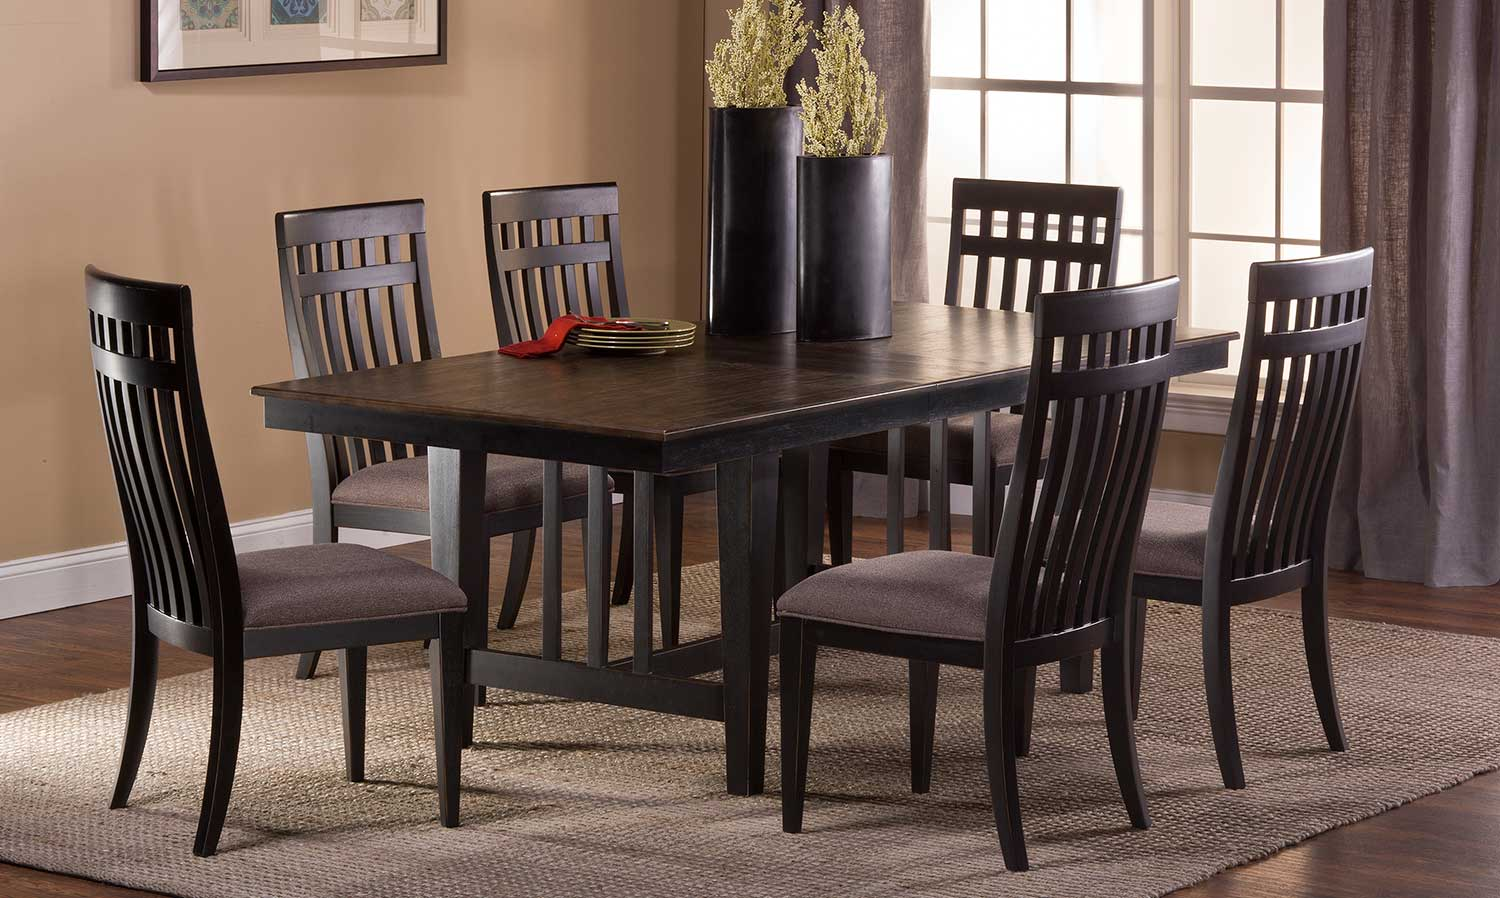 Hillsdale Copeland 7 PC Dining Set - Distressed Black - Woven Gray Fabric